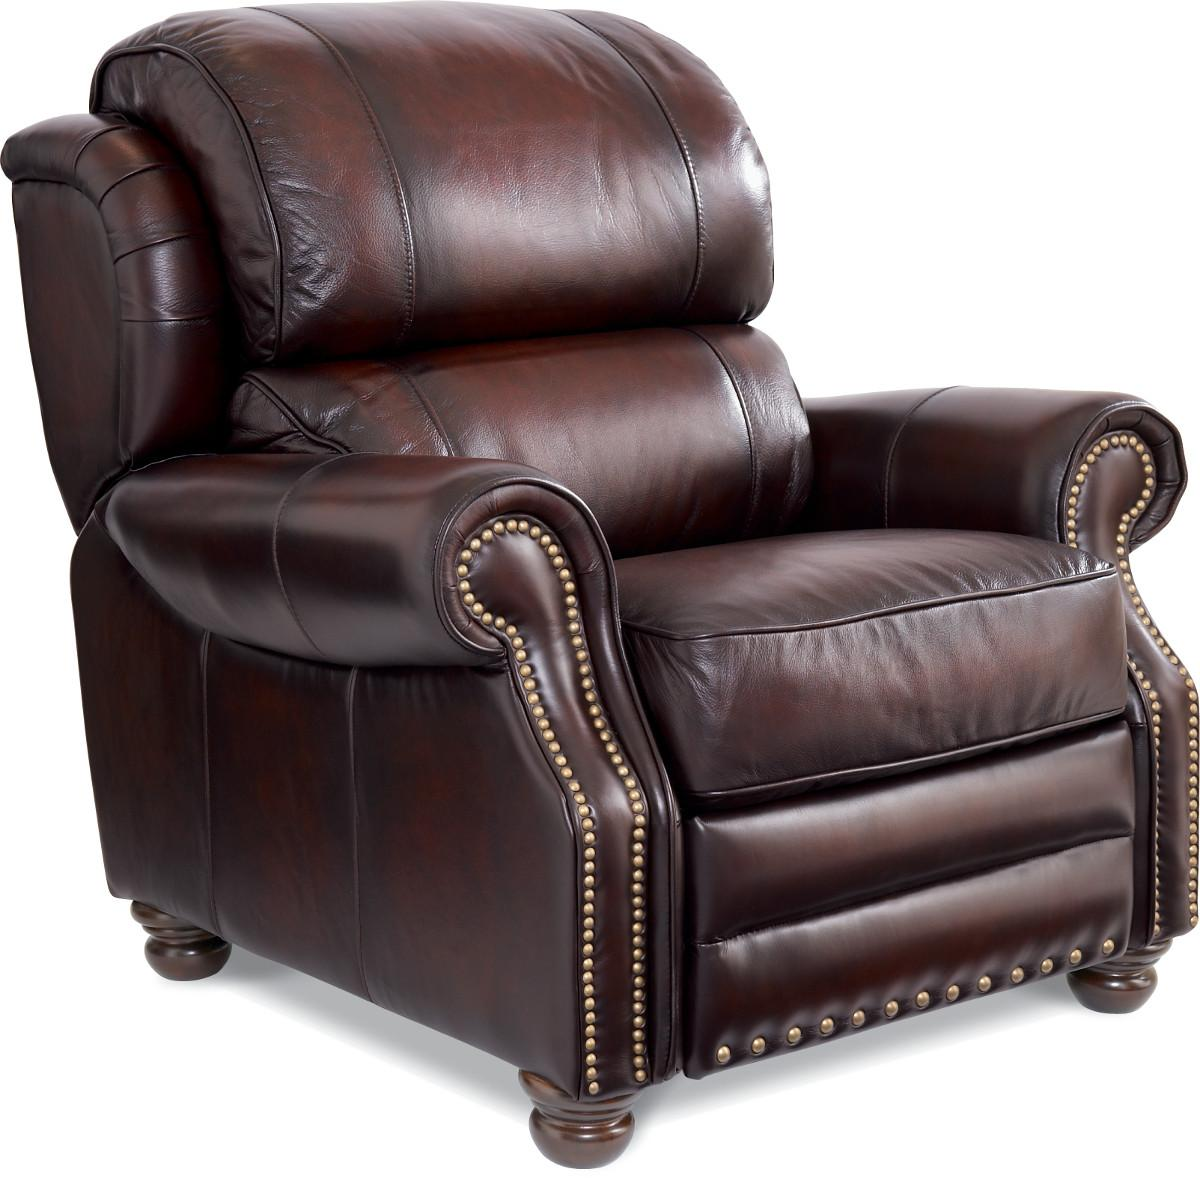 electric lift chairs perth wa recliner desk chair lazboy la z boy nexus leather executive office